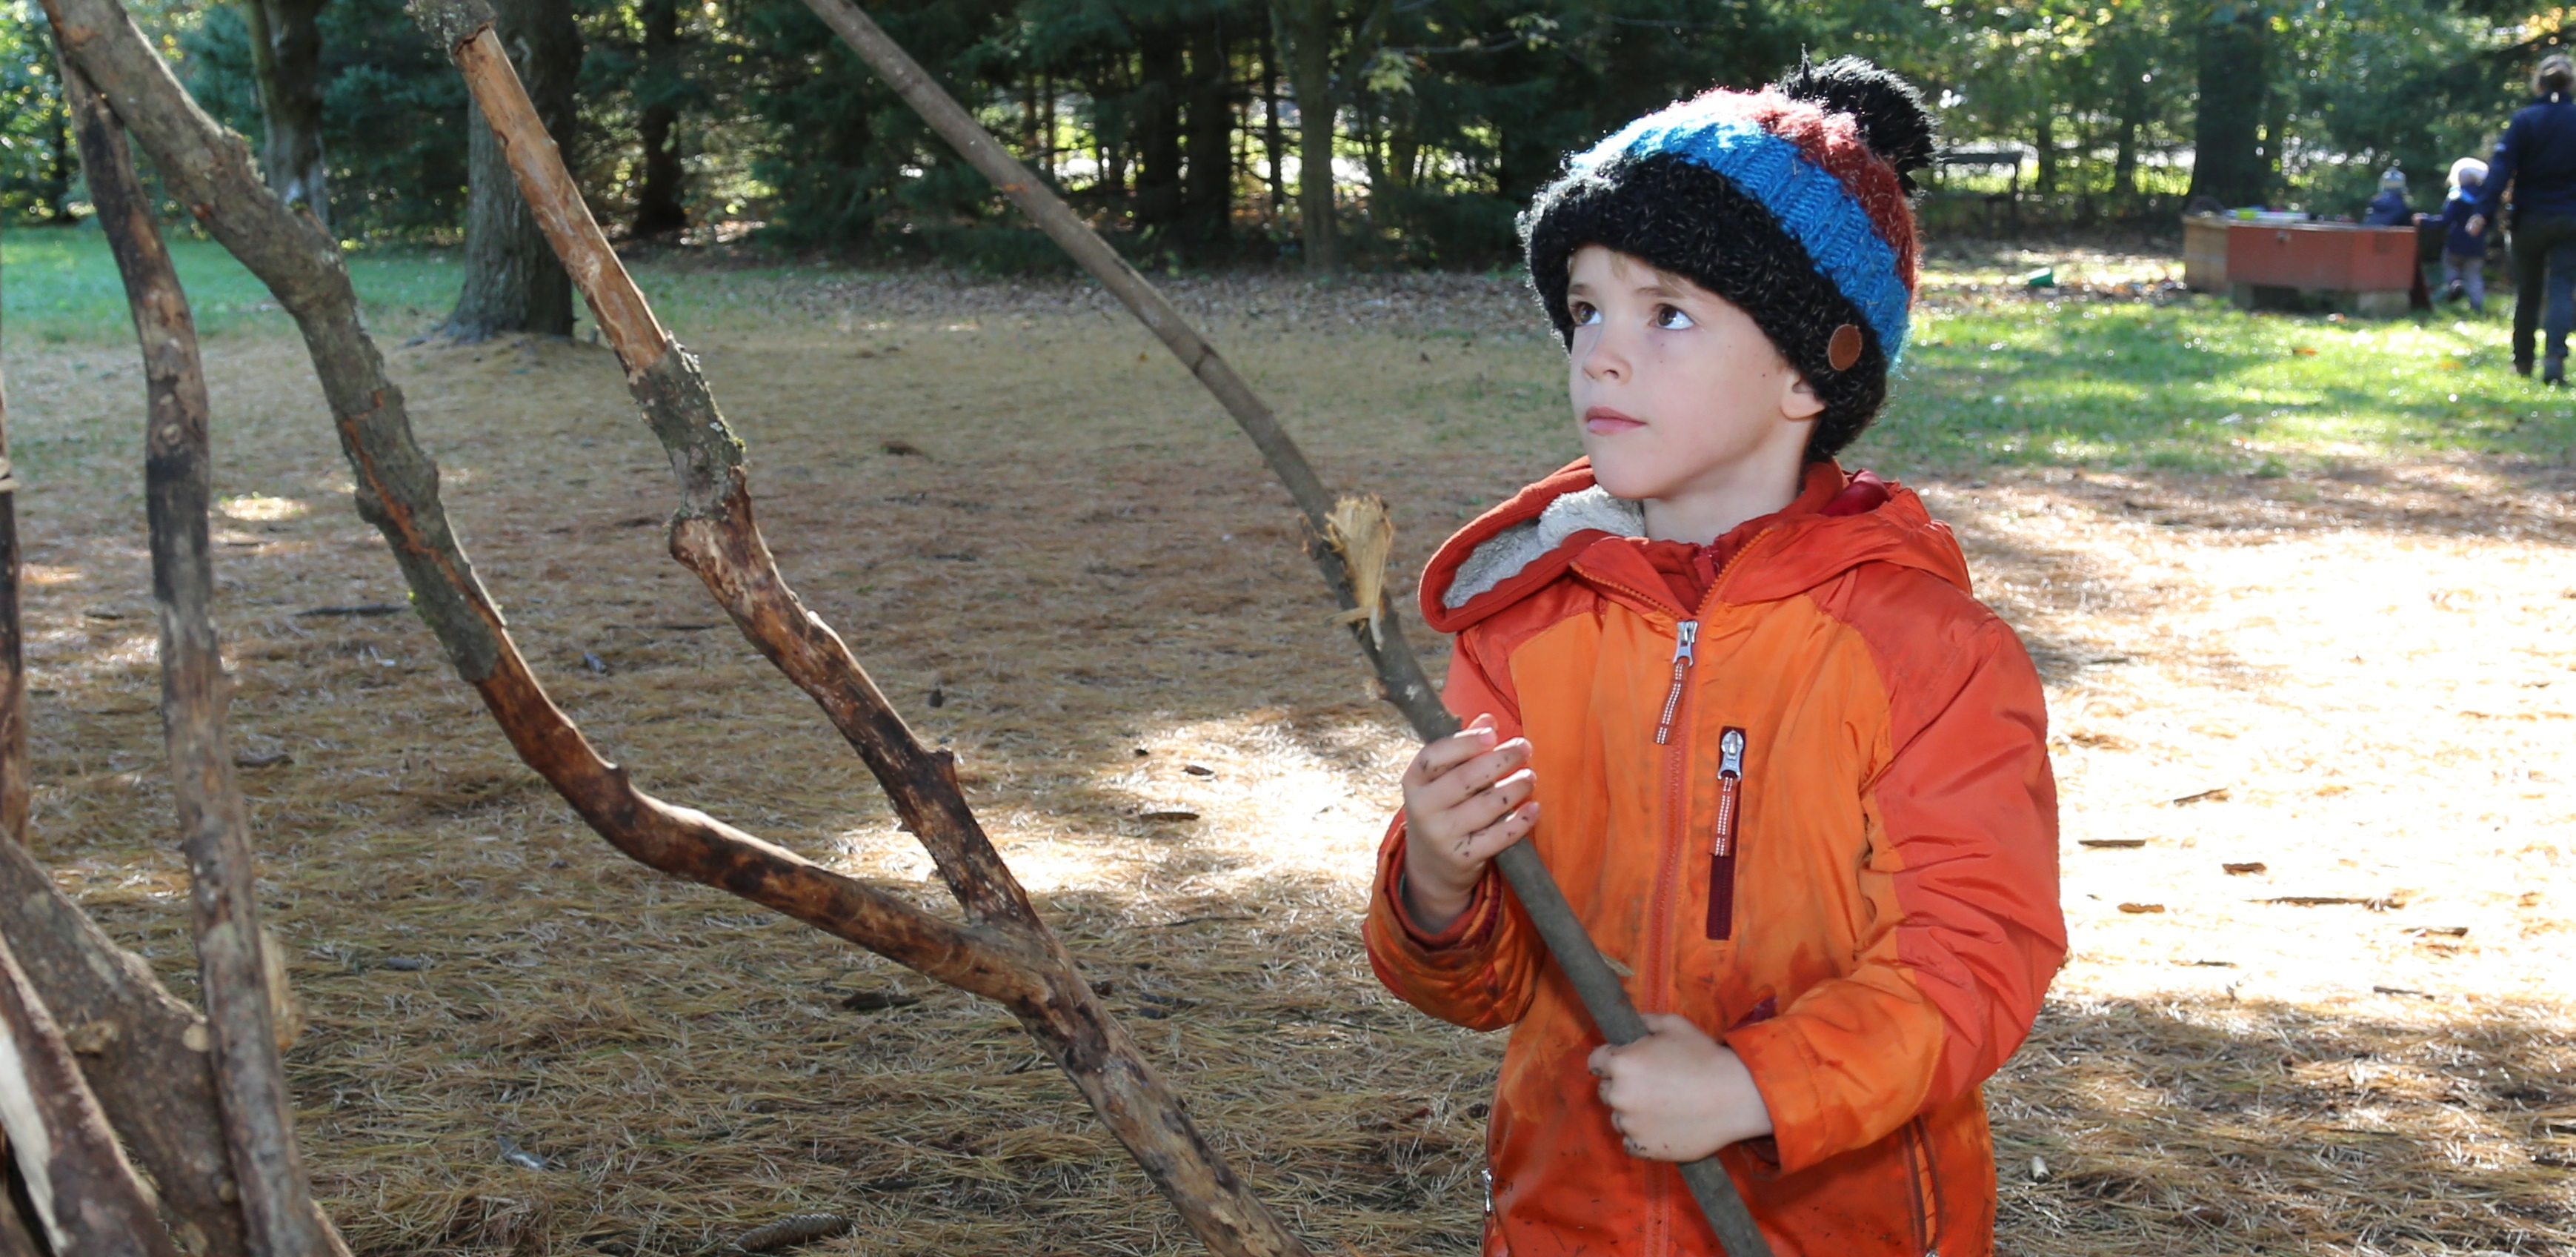 young boy takes part in Little Saplings program at Kortright Centre for Conservation